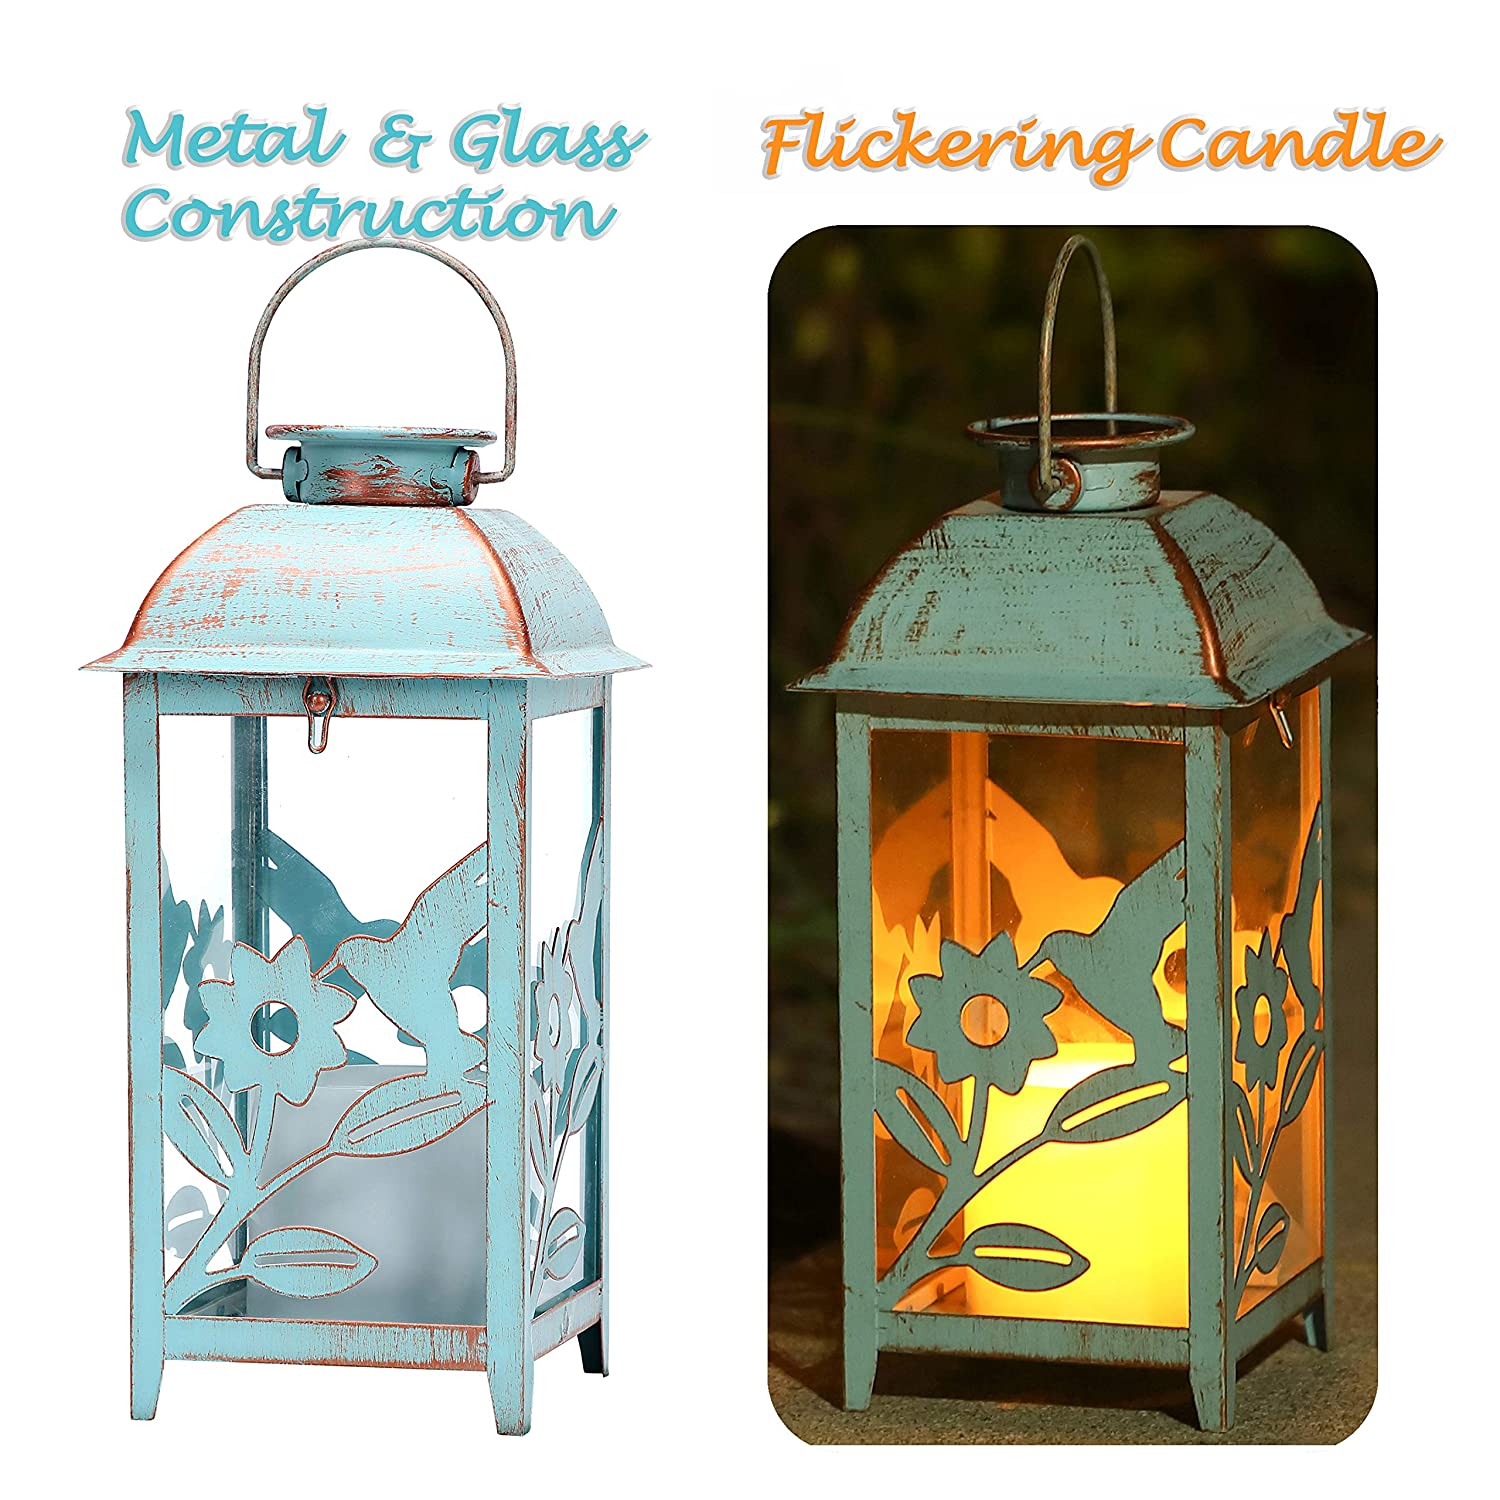 Solar Lantern Outdoor Hummingbird Blue Decor Antique Metal and Glass Construction Mission Solar Garden Lantern Indoor and Outdoor Solar Hanging Lantern Entirely Solar Powered Lantern Low Maintenance